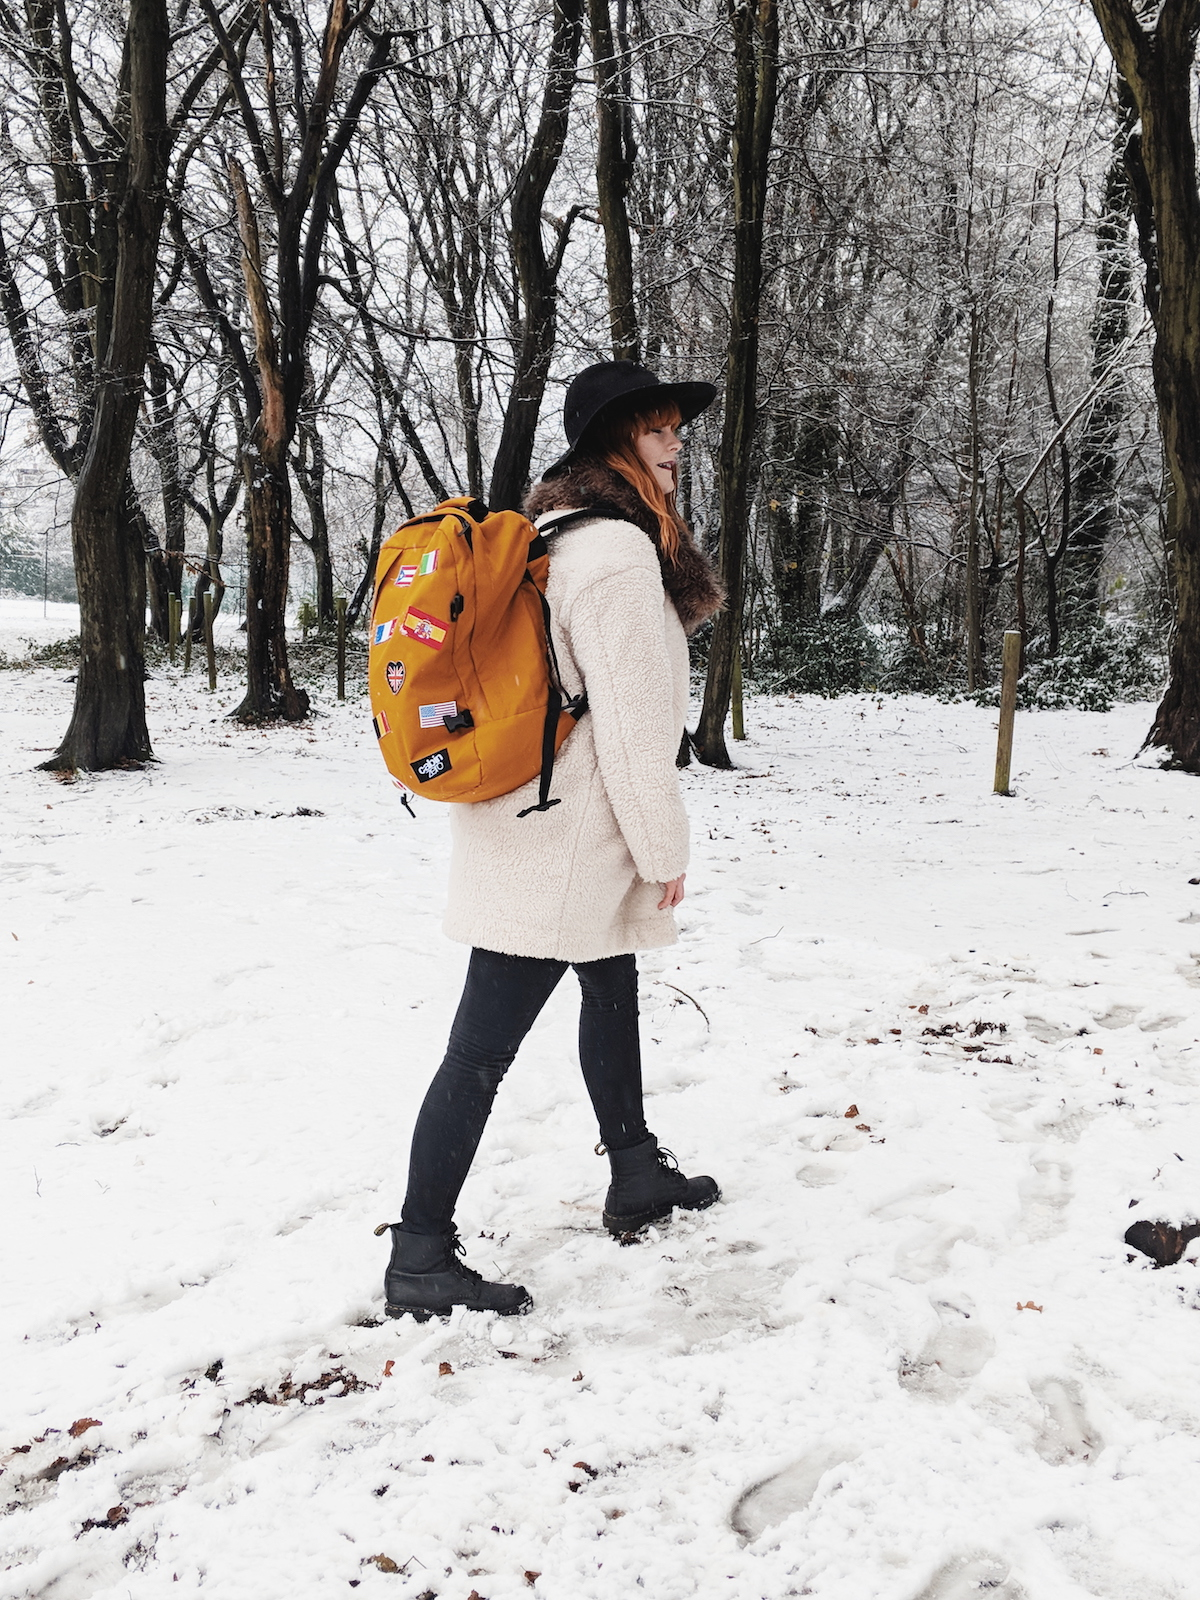 Travel blogger, Leigh Travers, walks amongst a snowy forest scene with her Cabin Zero rucksack